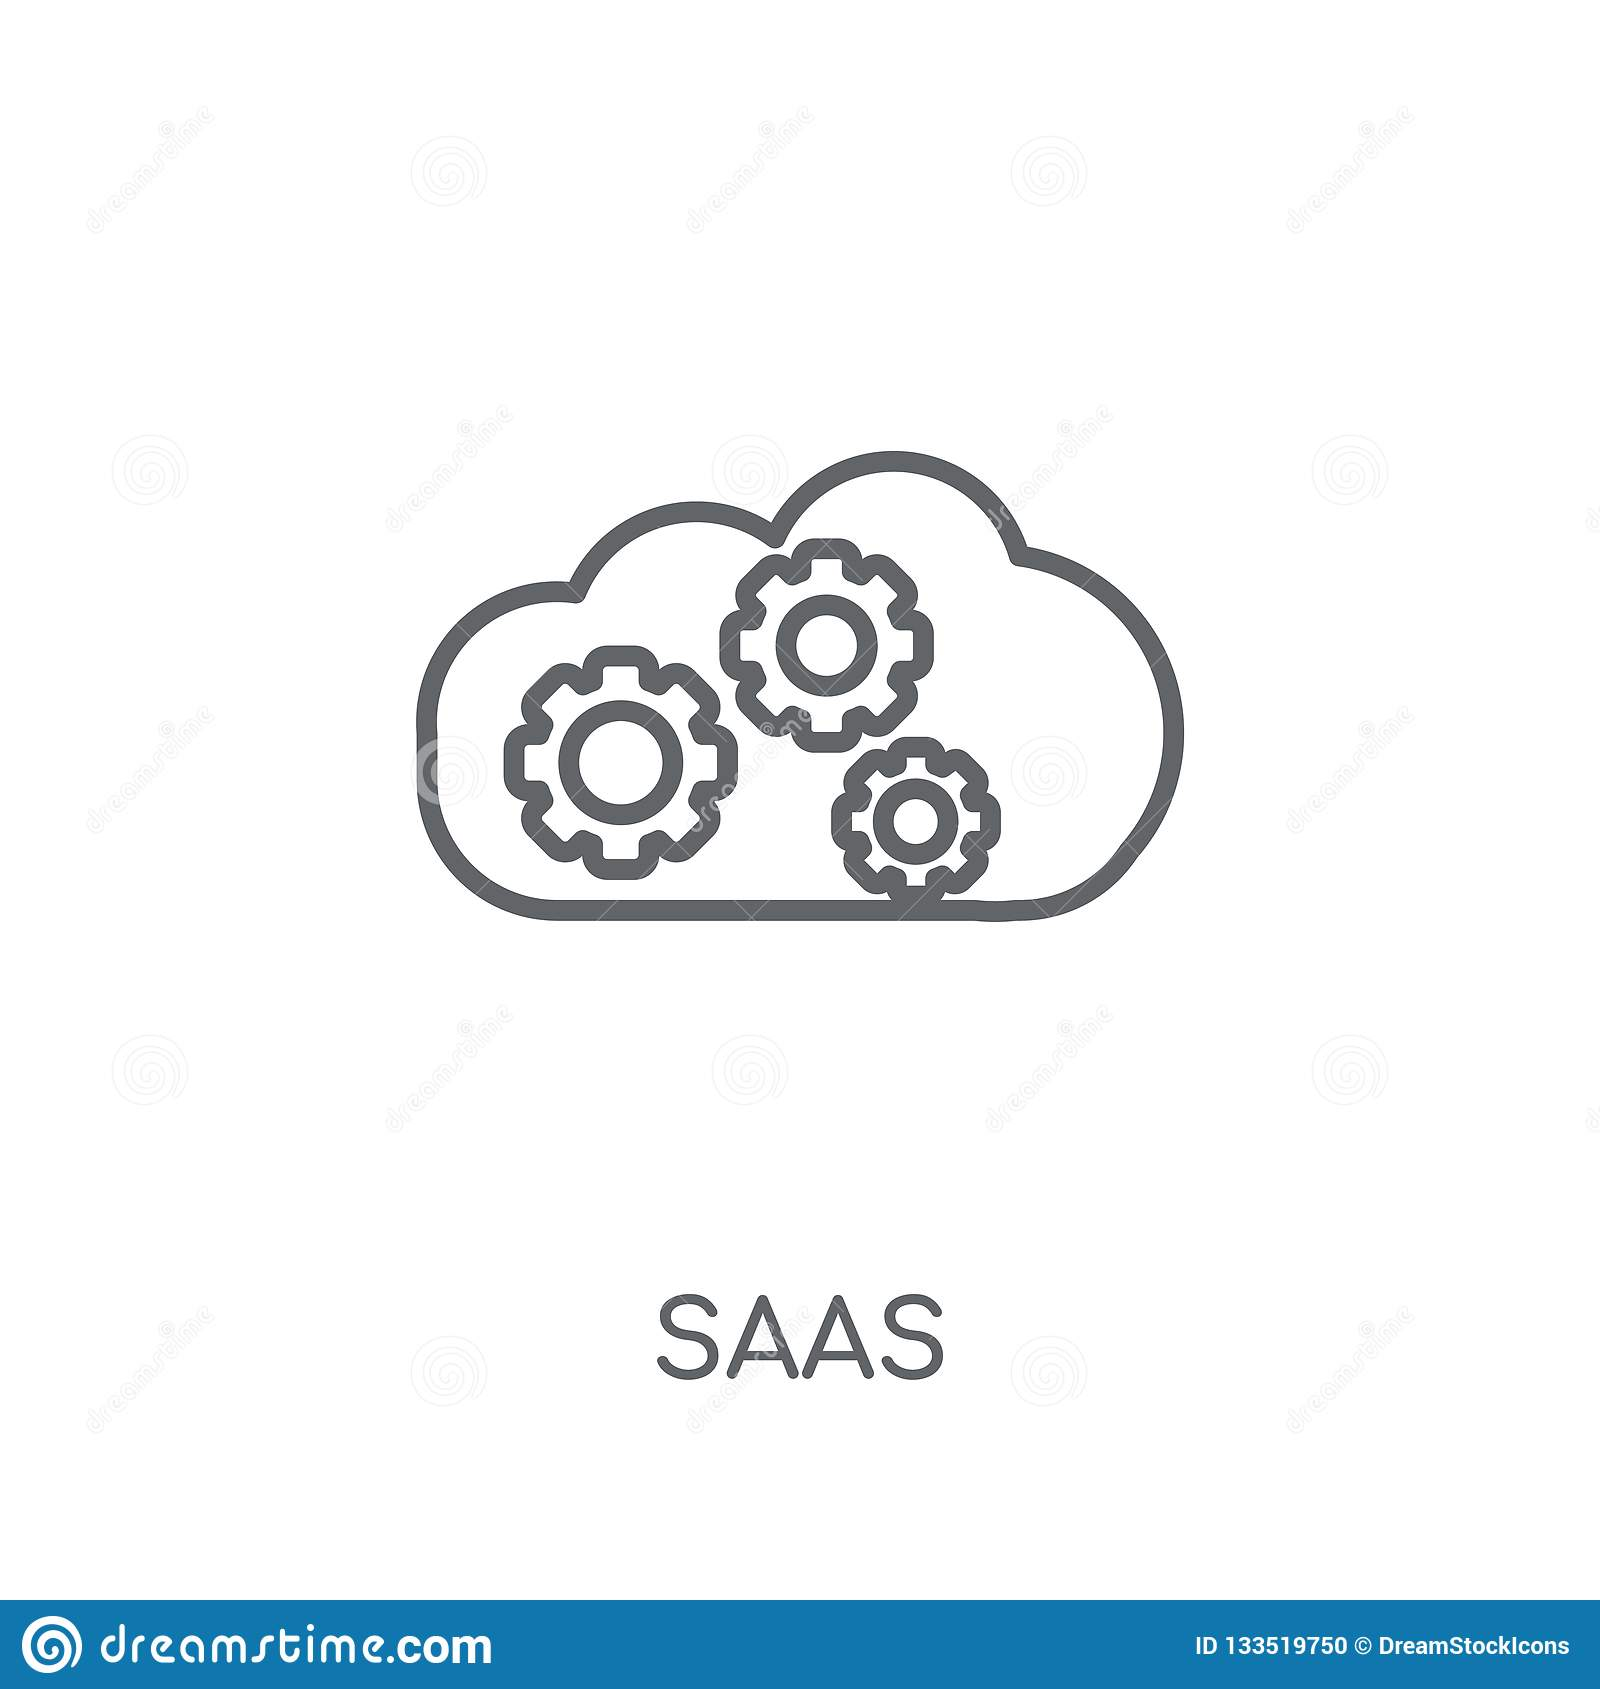 saas linear icon. Modern outline saas logo concept on white back